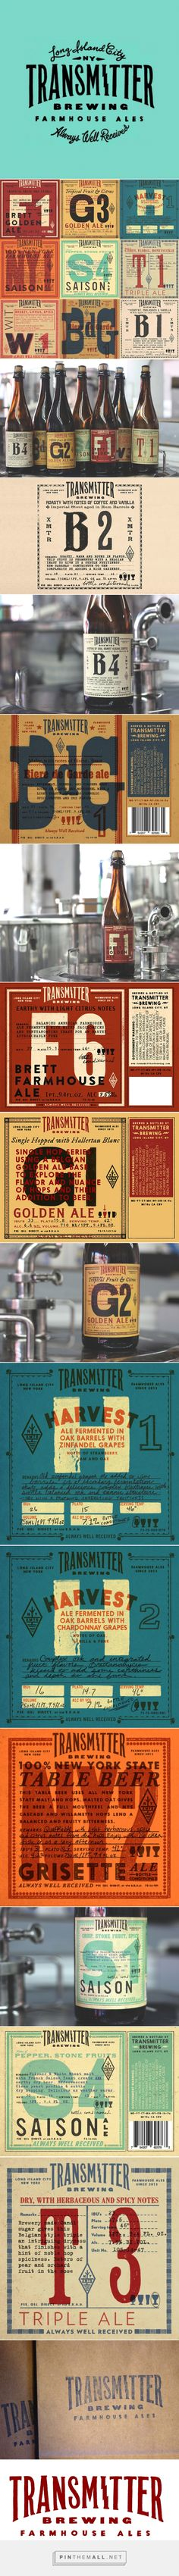 Transmitter Brewing | Oh Beautiful Beer - created via https://pinthemall.net